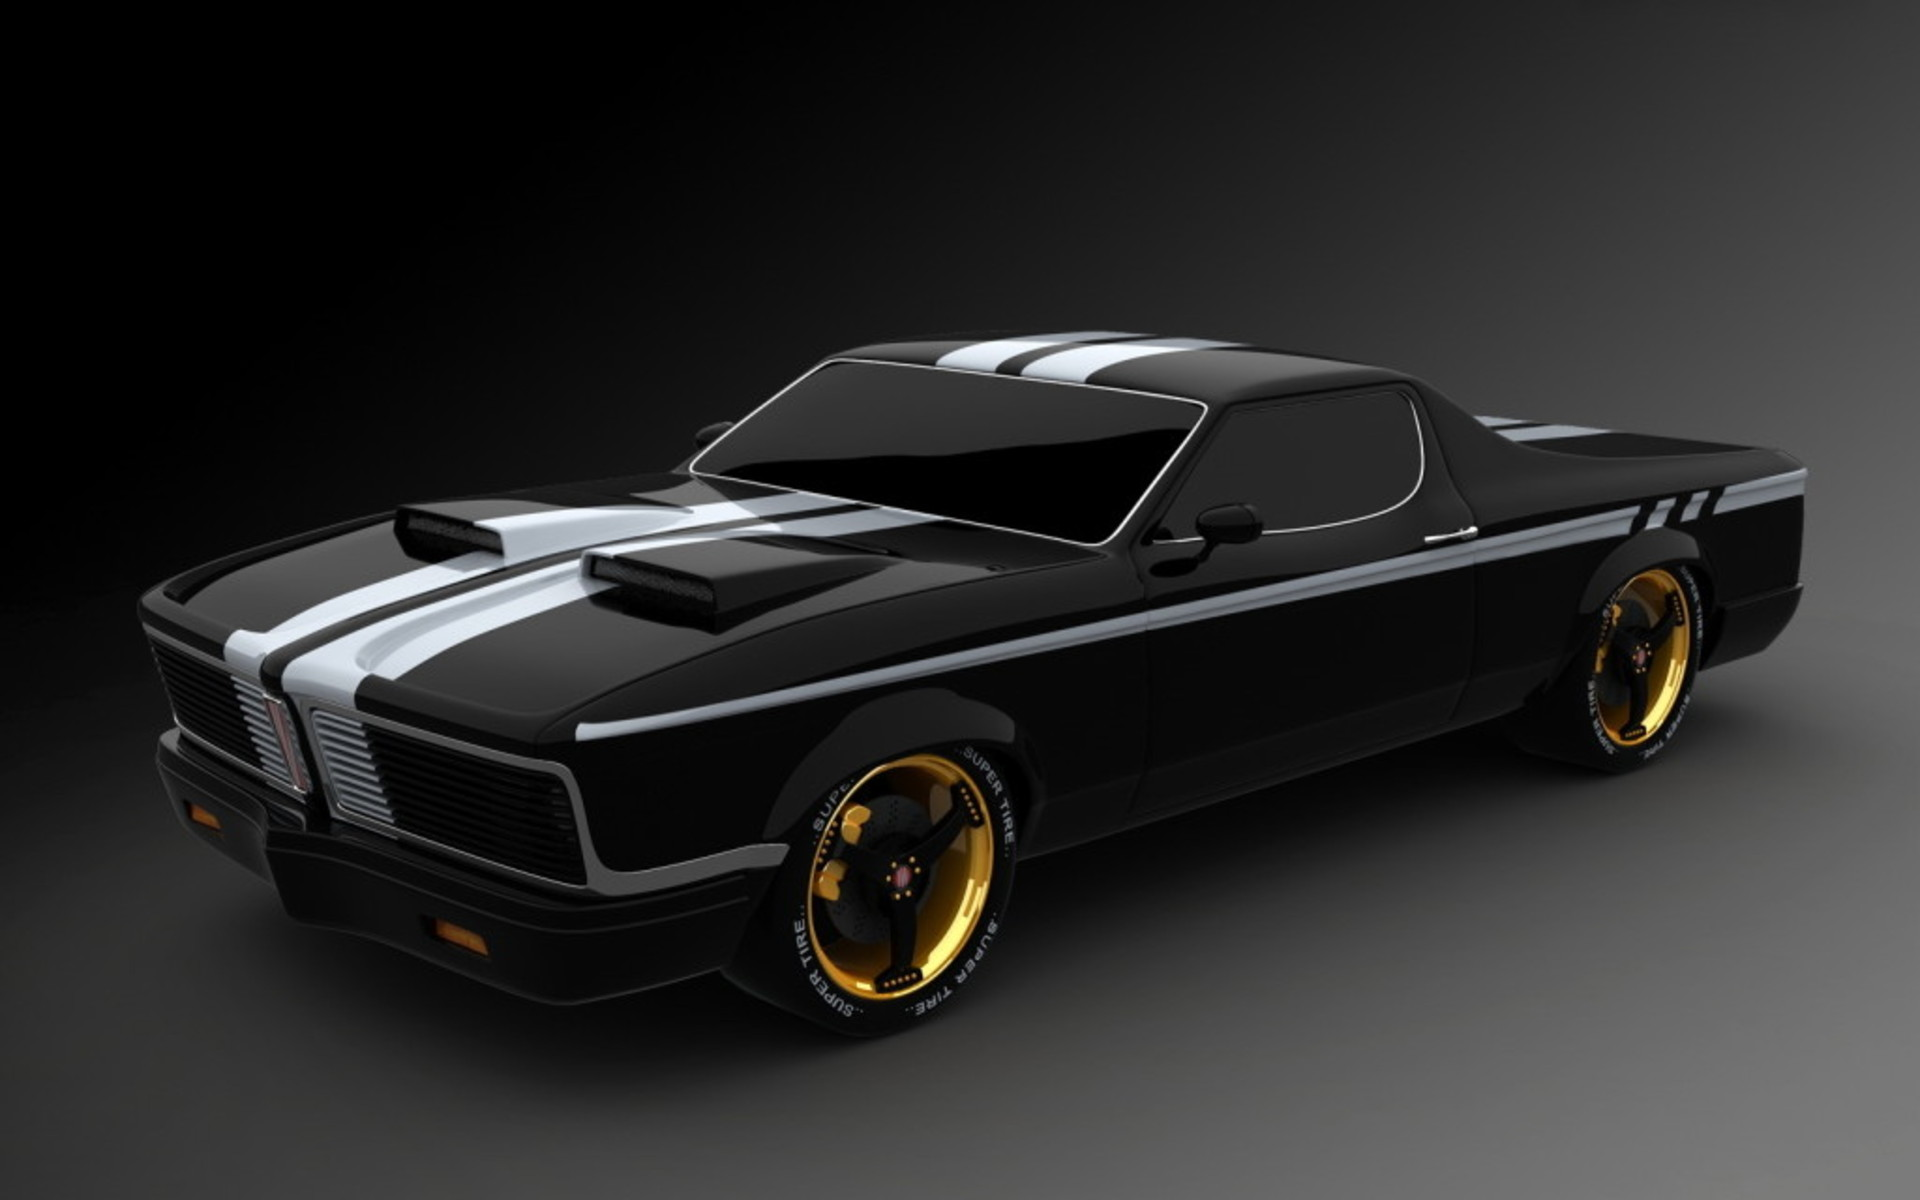 american muscle car wallpaper images free hd 1920x1200